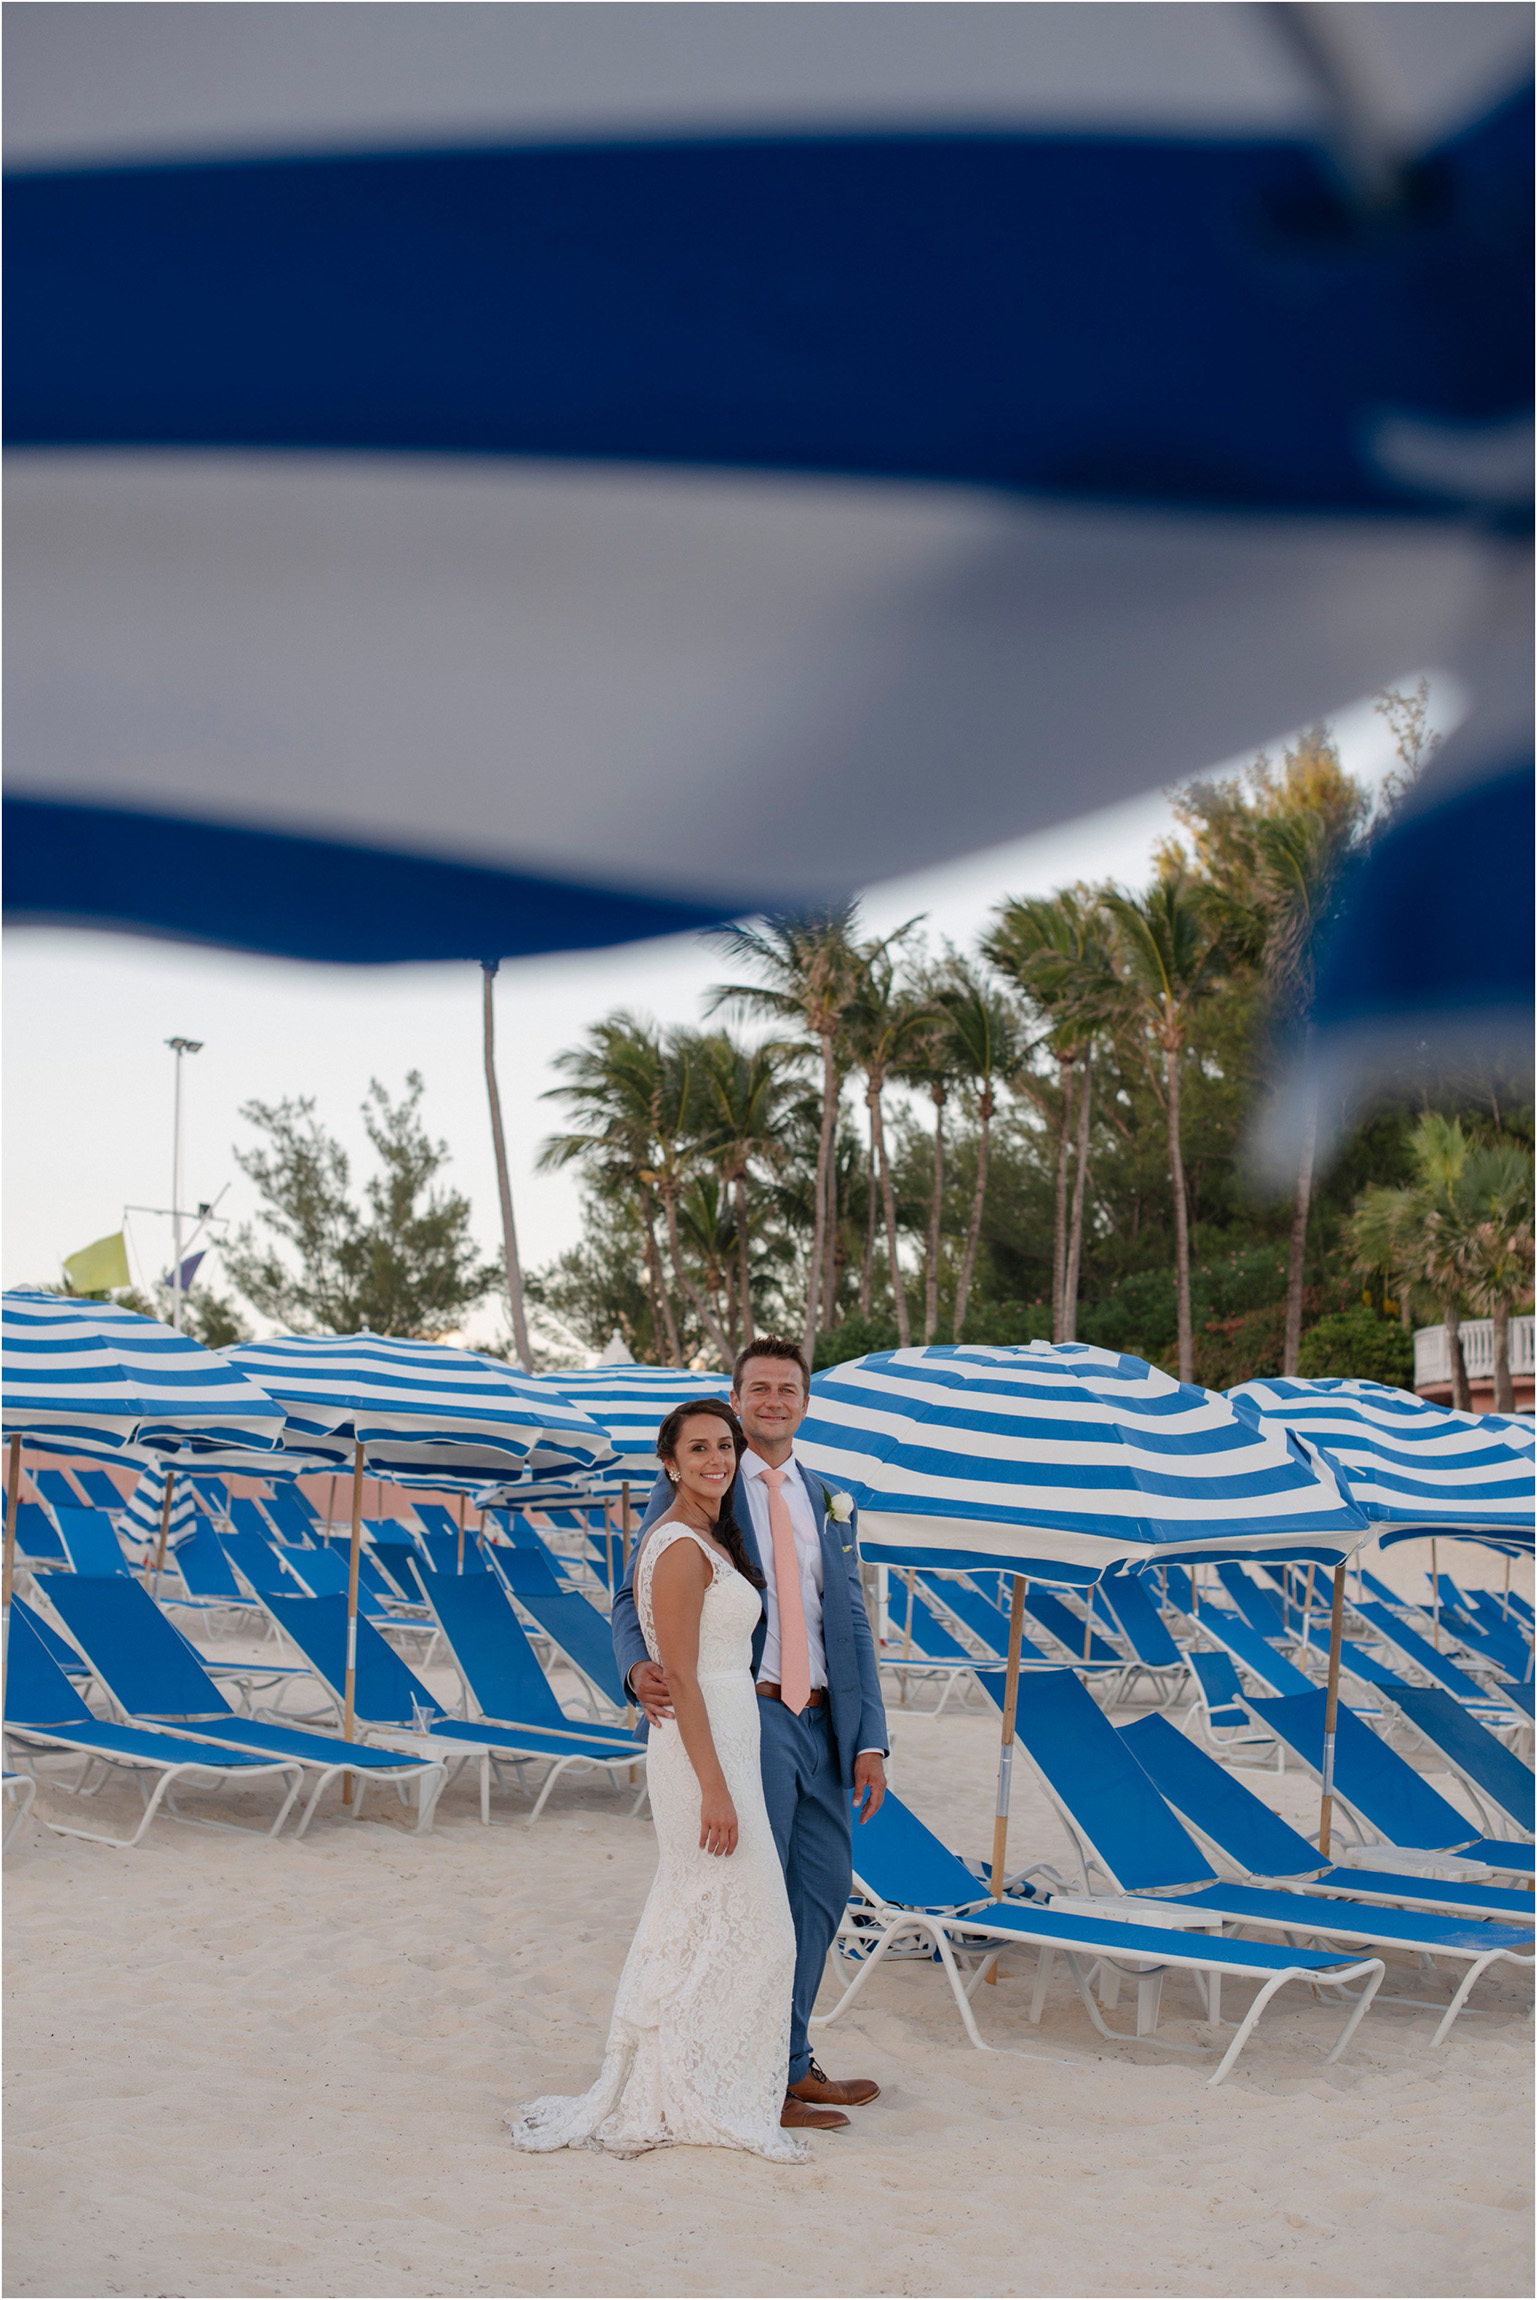 ©FianderFoto_Bermuda Wedding Photographer_Fairmont Southampton_Wedding_Anna_Thomas_100.jpg